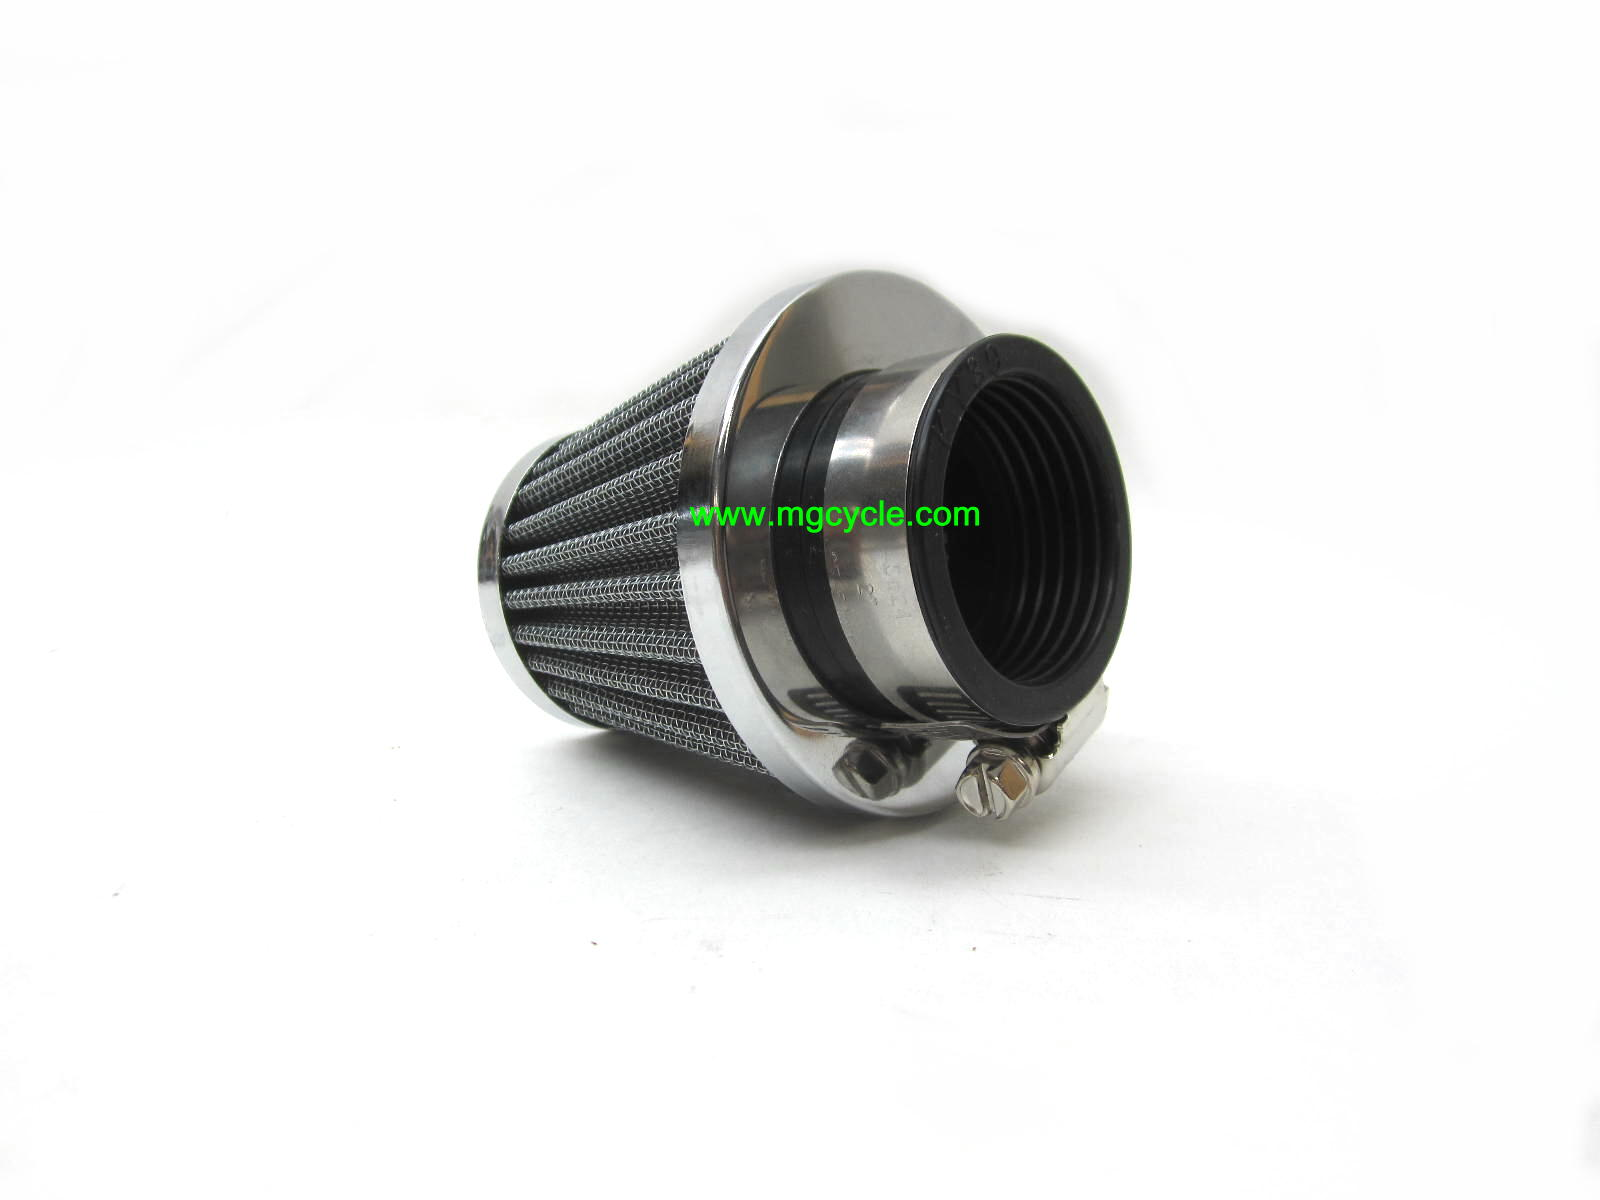 conical air filter pod for VHB 29 and VHB 30 carburetors